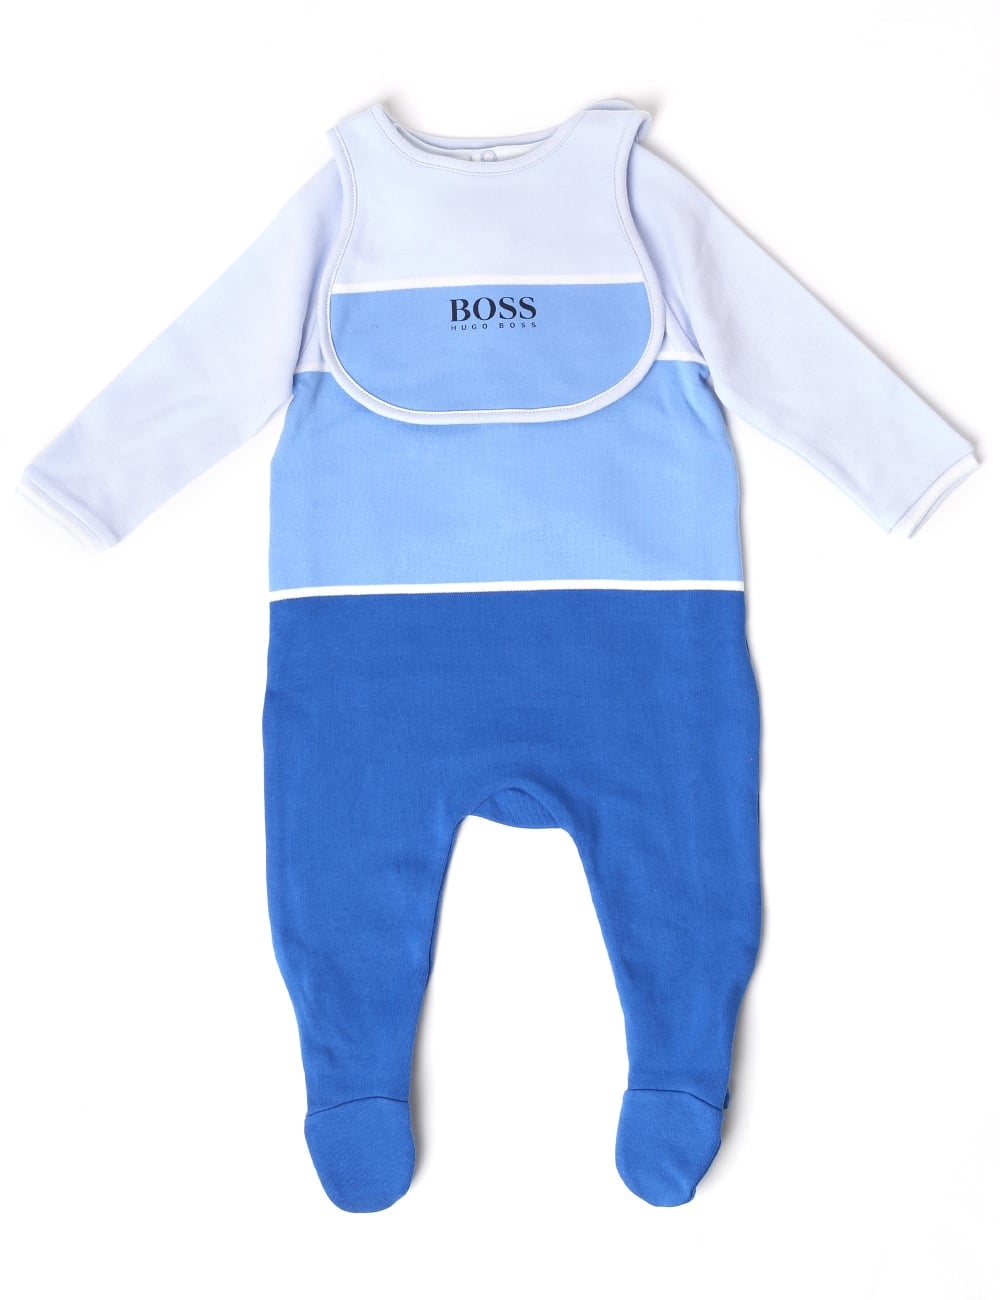 Hugo Boss Baby Boys Pyjamas And Bib Set